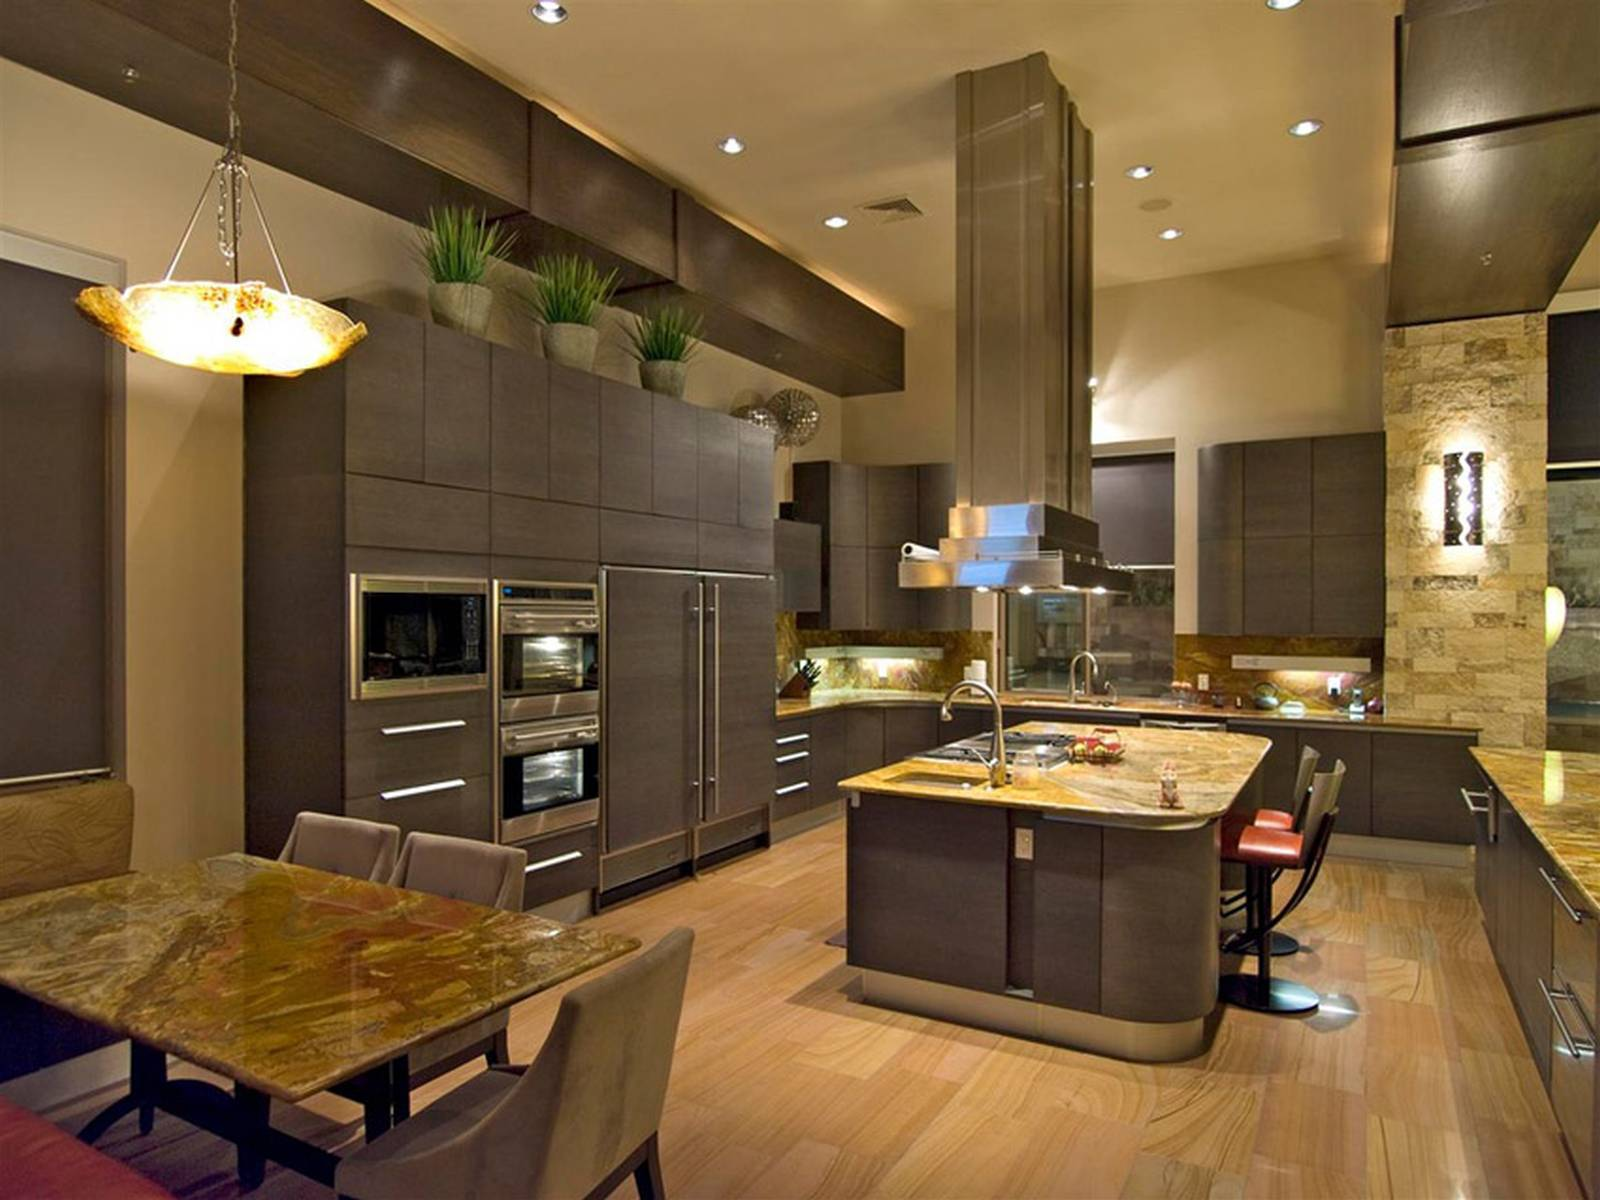 High Ceiling Kitchen Design Ideas ~ Contemporary kitchen with high ceilings light wood floors